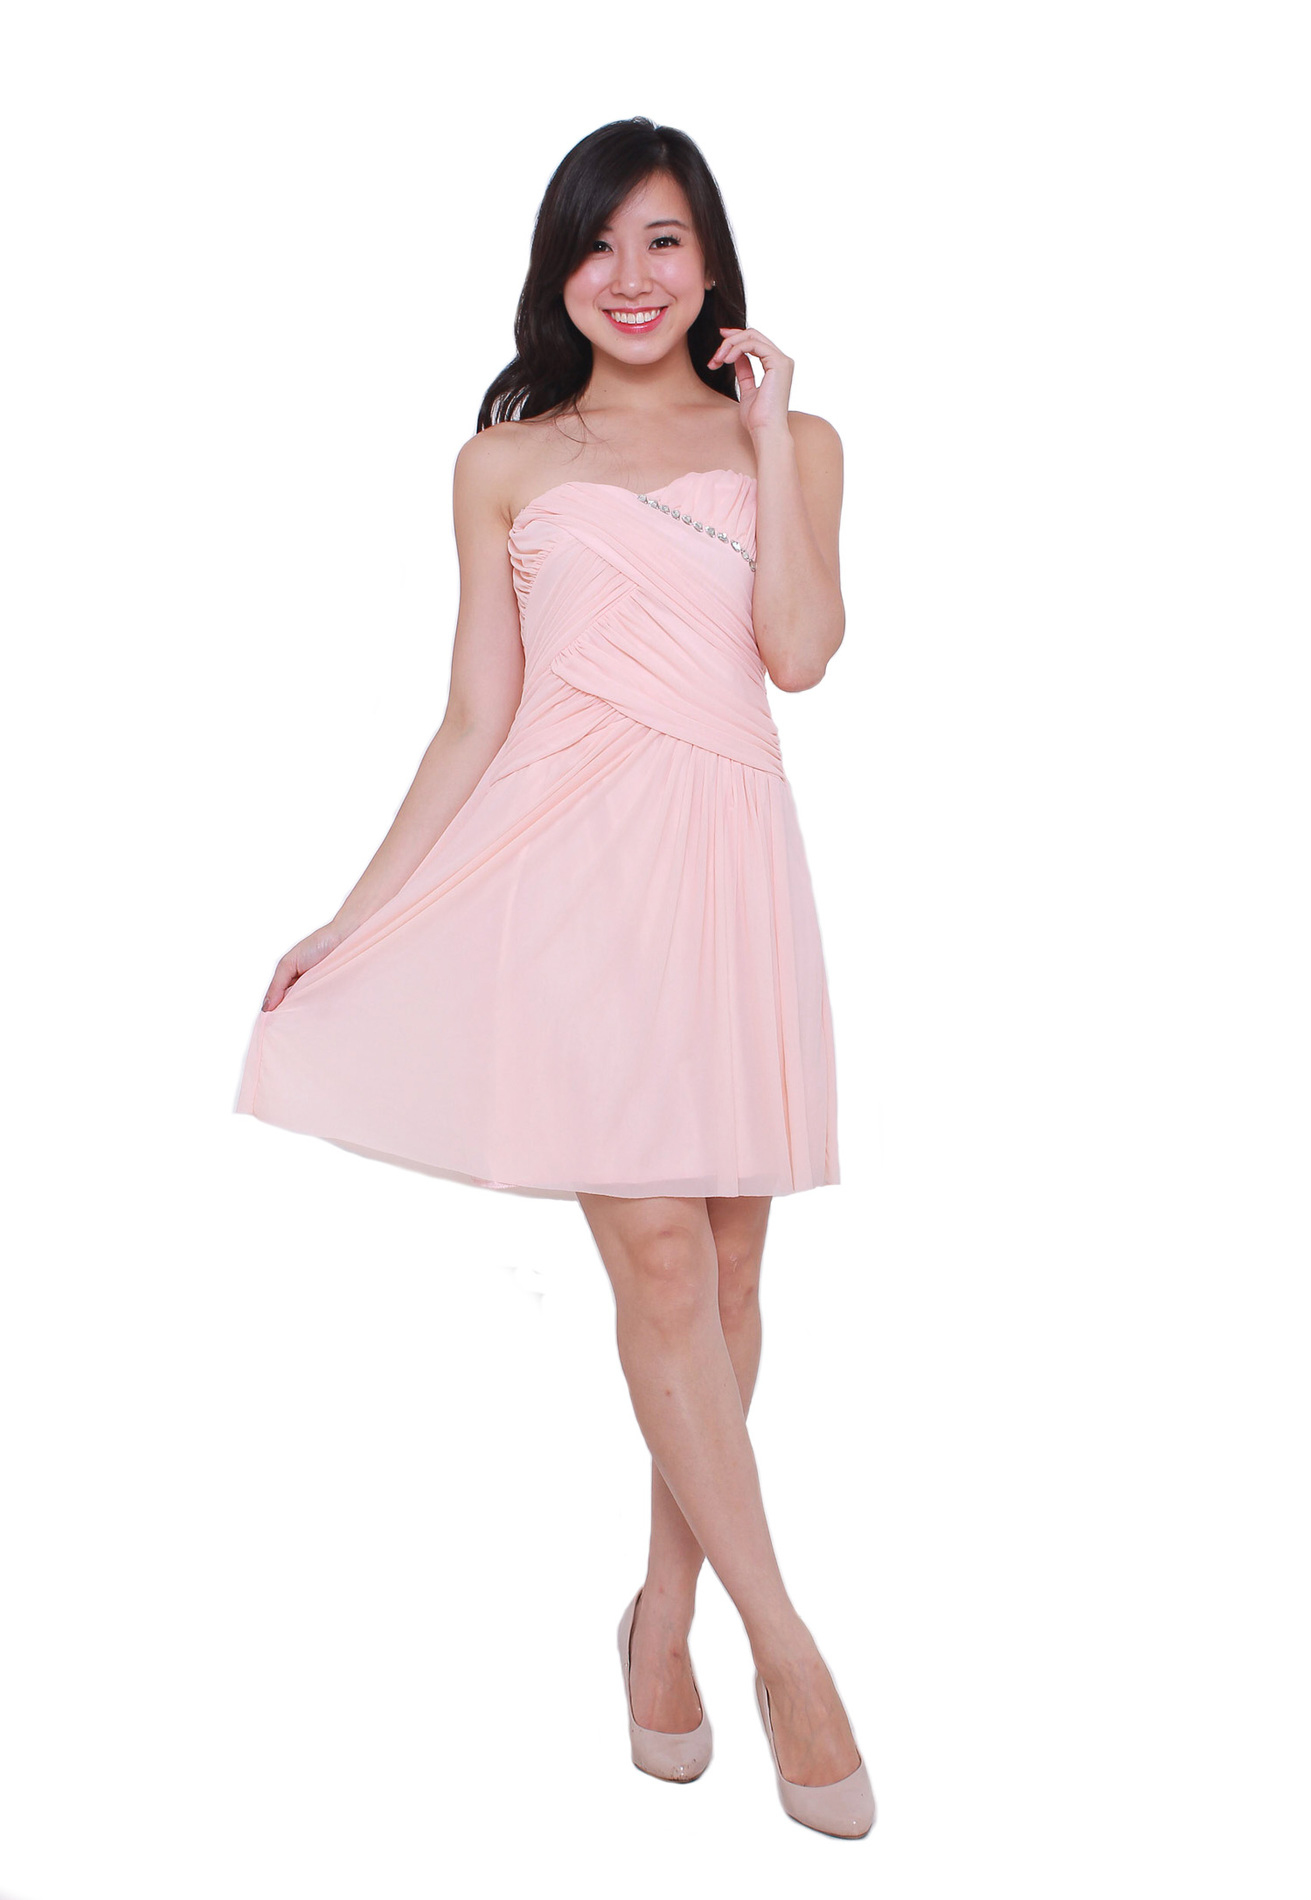 under100-bridesmaids-zalora2a